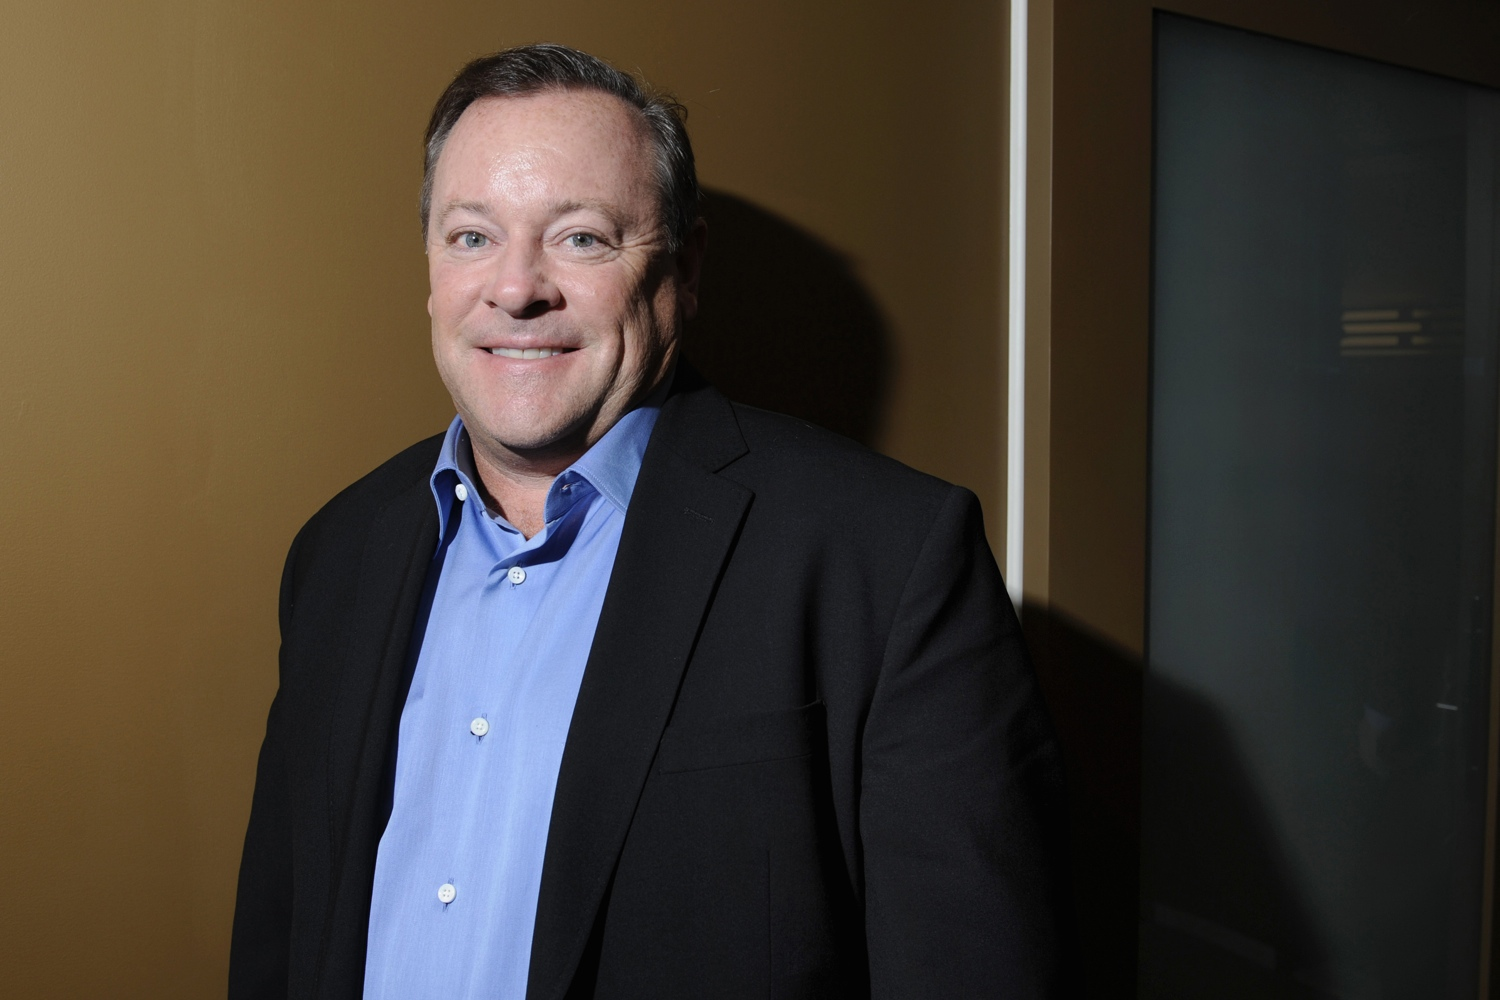 President and CEO of Sony Computer Entertainment of America, Jack Tretton, is photographed during the Electronic Entertainment Expo (E3), in Los Angeles June 5, 2012.